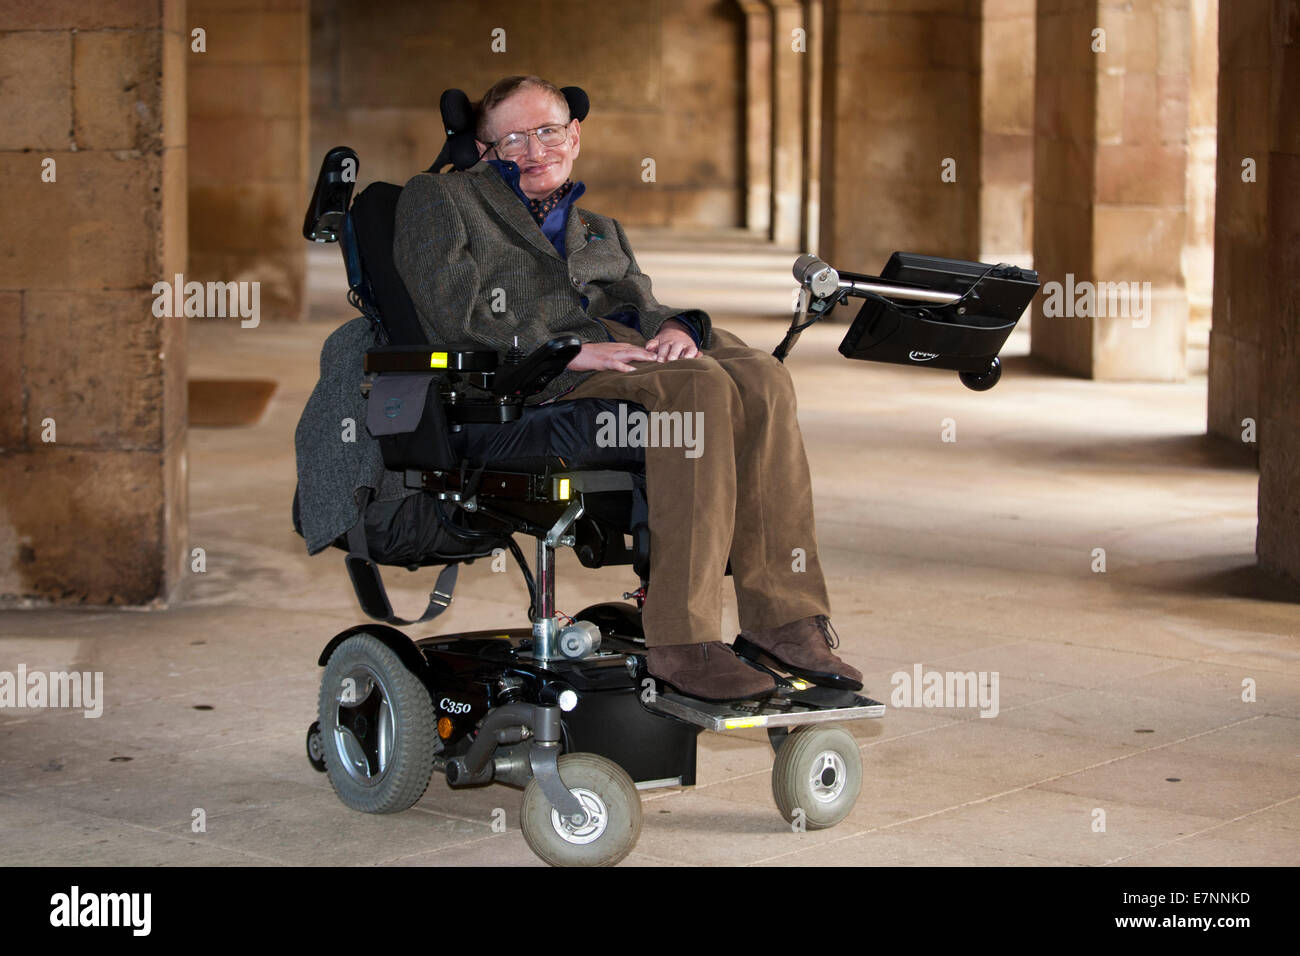 Professor Stephen Hawking at the Premier of the biopic of his life, 'Hawking' which is premiering at a Gala - Stock Image